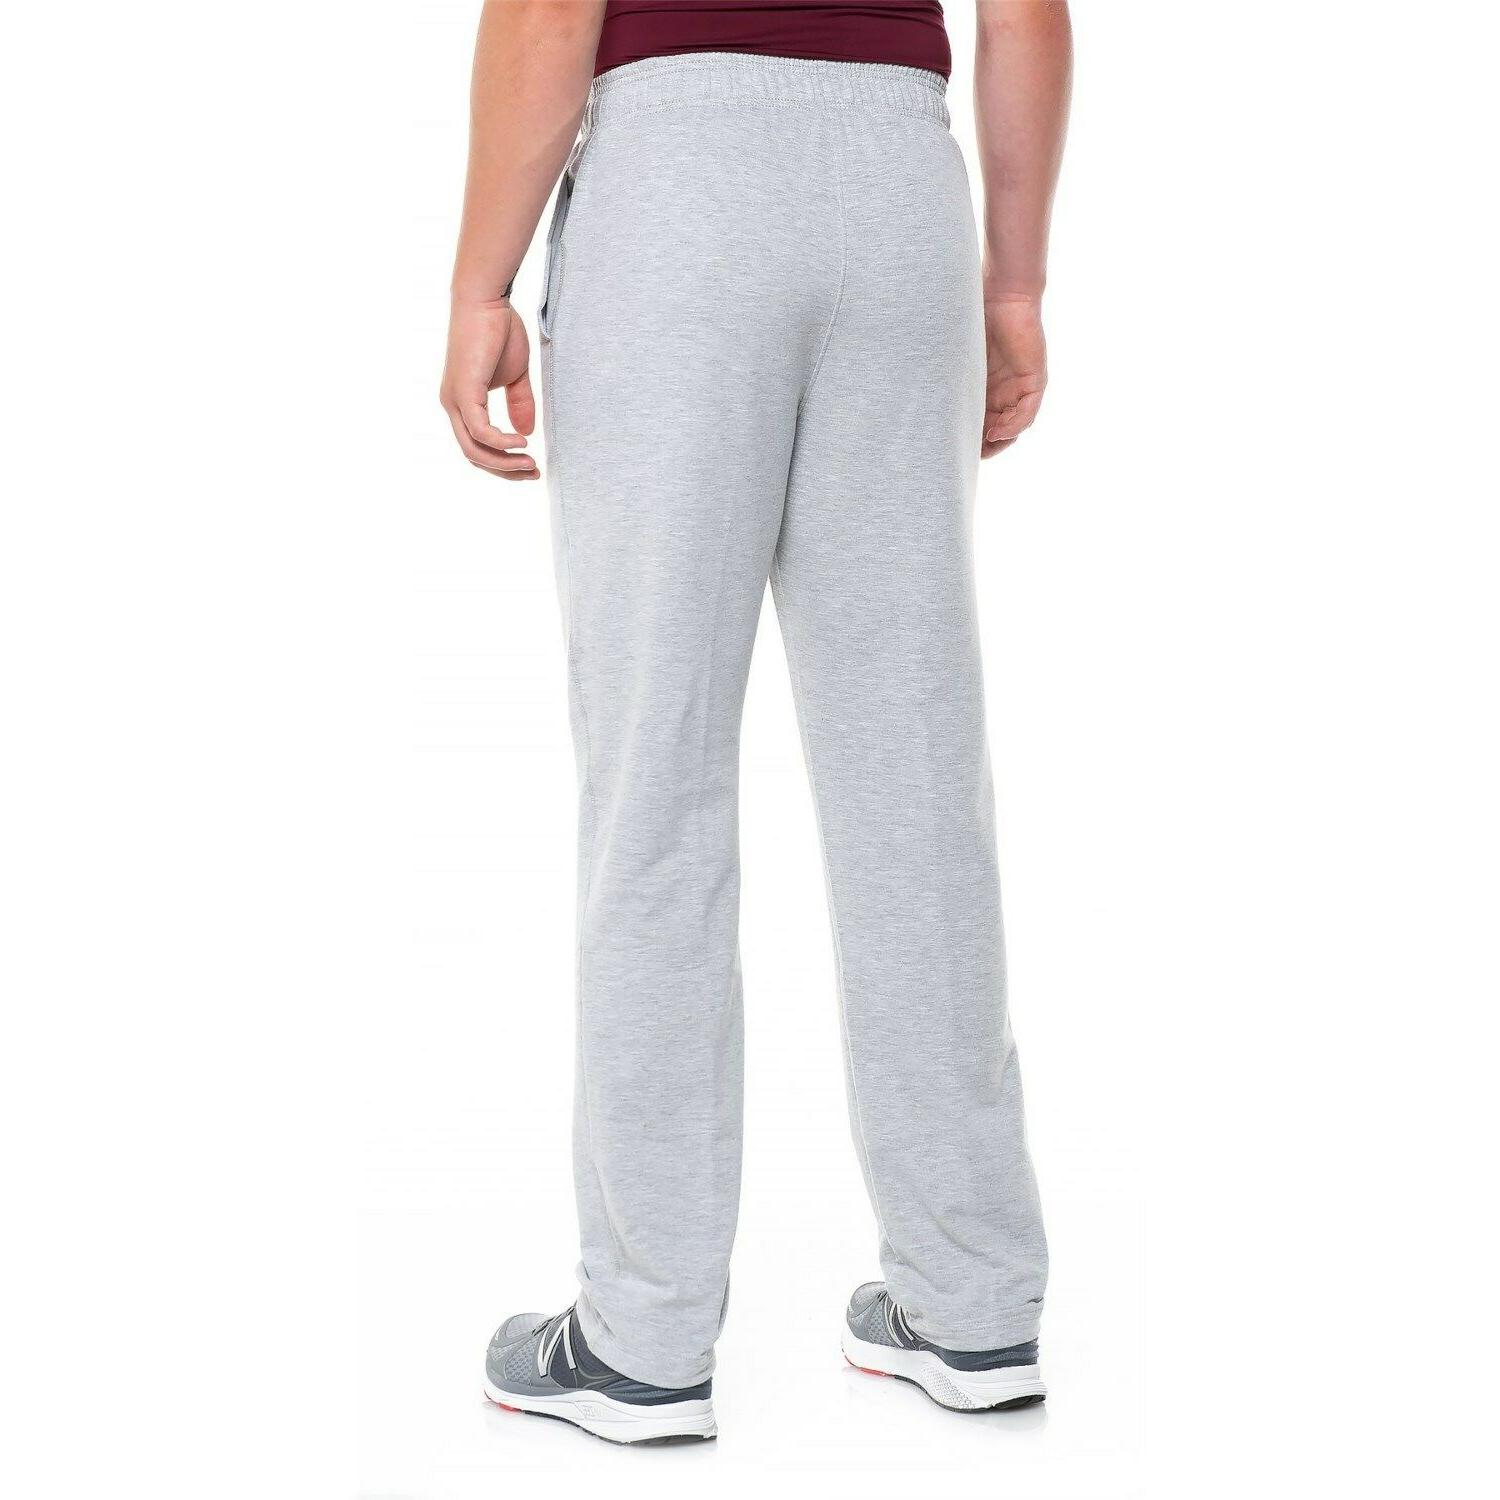 Asics Team Everyday Pants Mens Athletic Performance Sweatpants